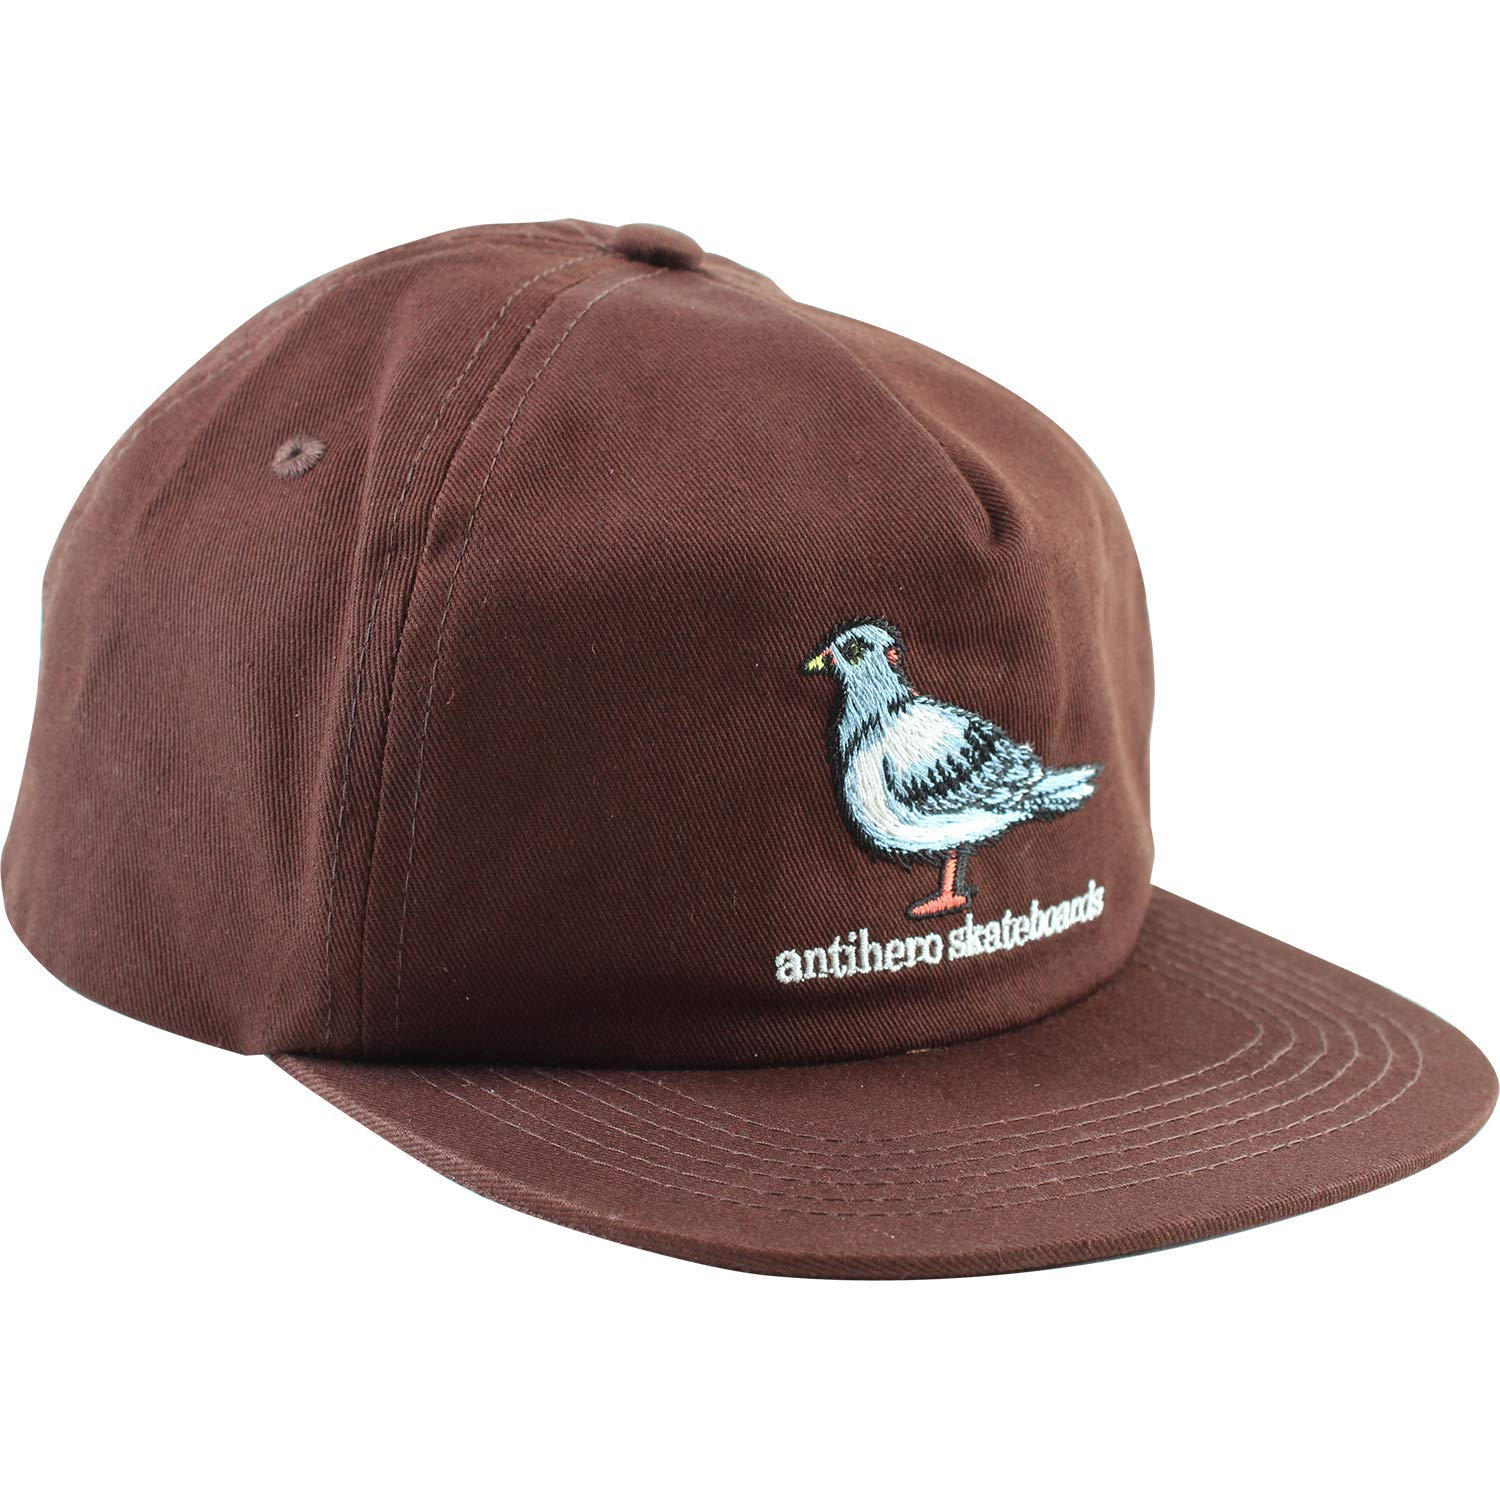 8ab165414d7 Get Quotations · Anti Hero Skateboards Pigeon Emblem Dark Brown 5 Panel Hat  - Adjustable